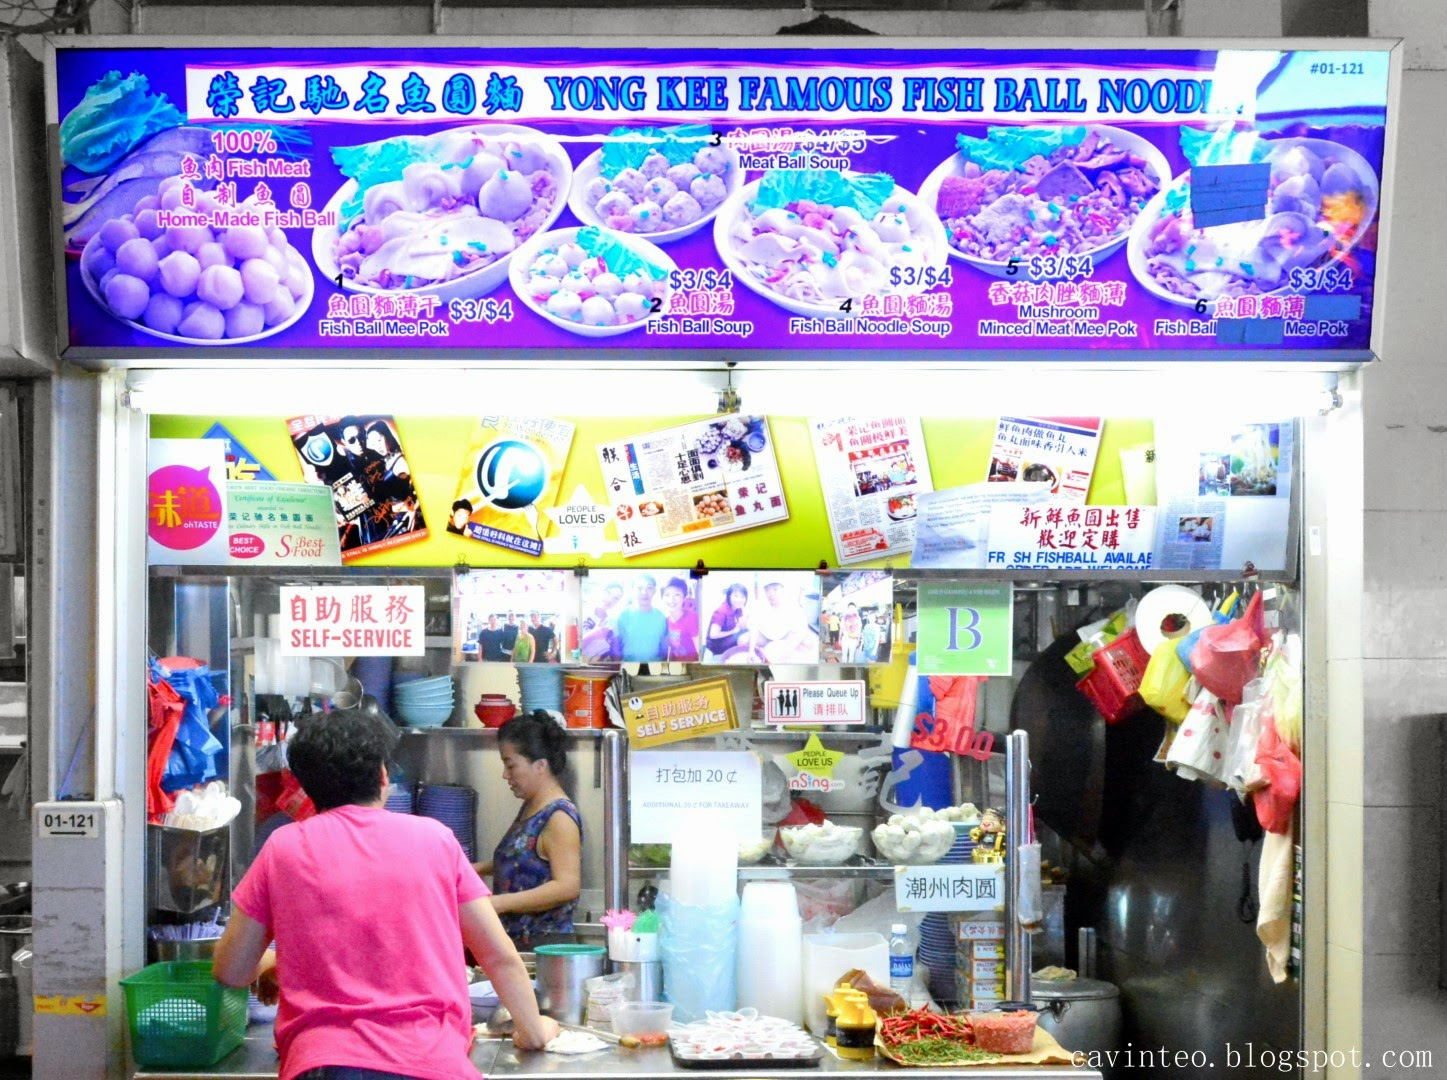 how does the fishball stall market